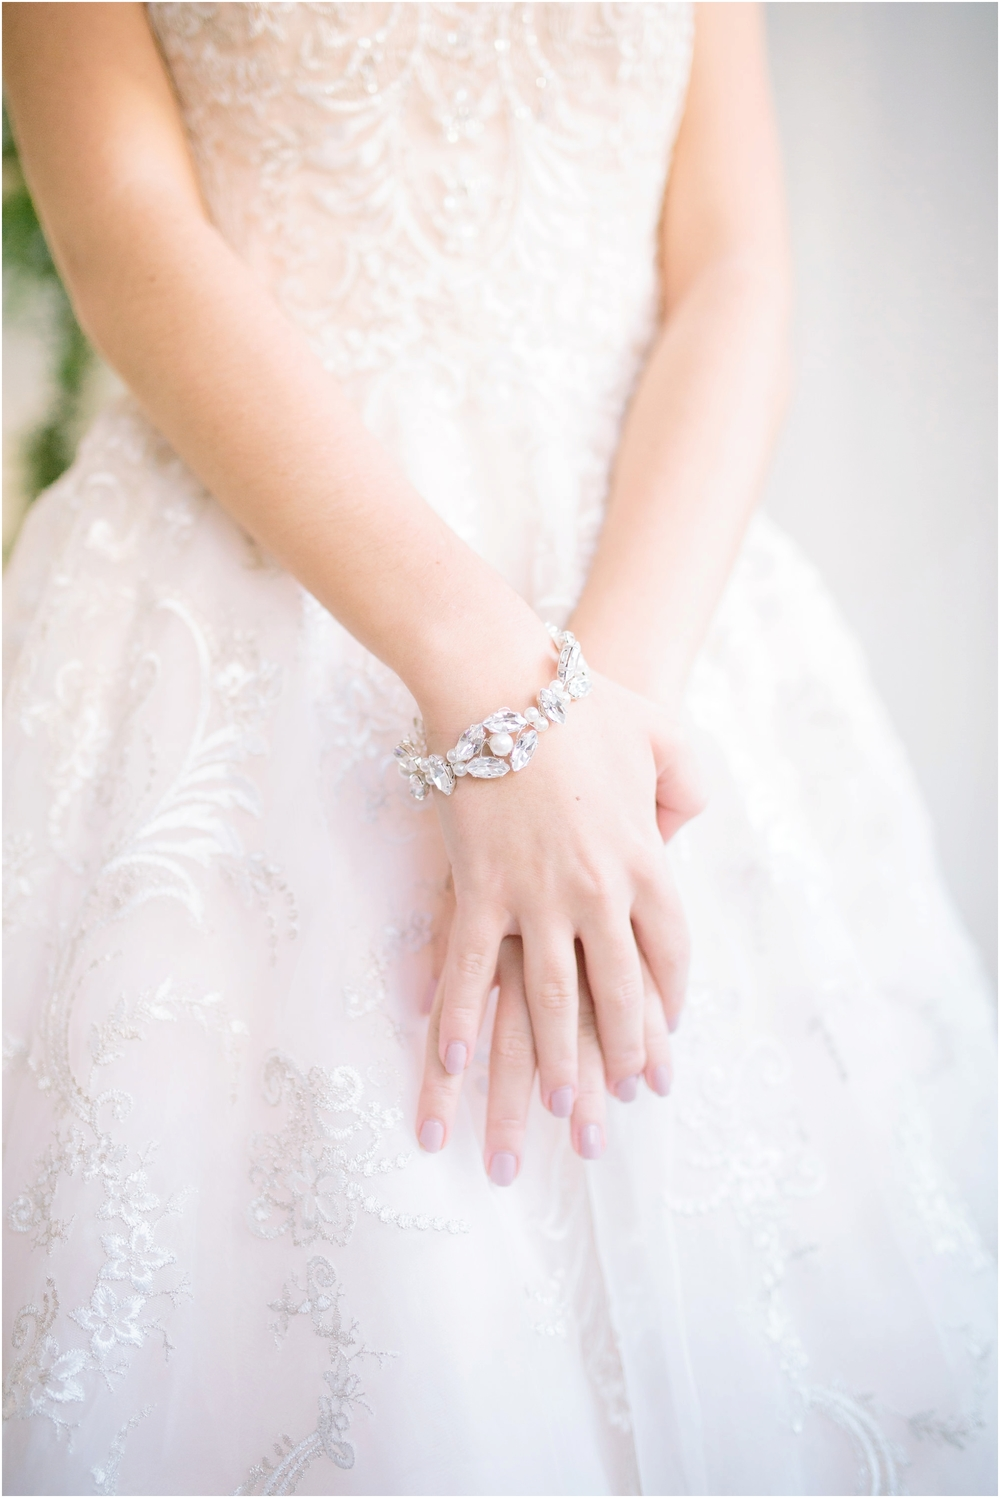 suzanne_li_photography_bridal_accessories_susan_dick_0020.jpg